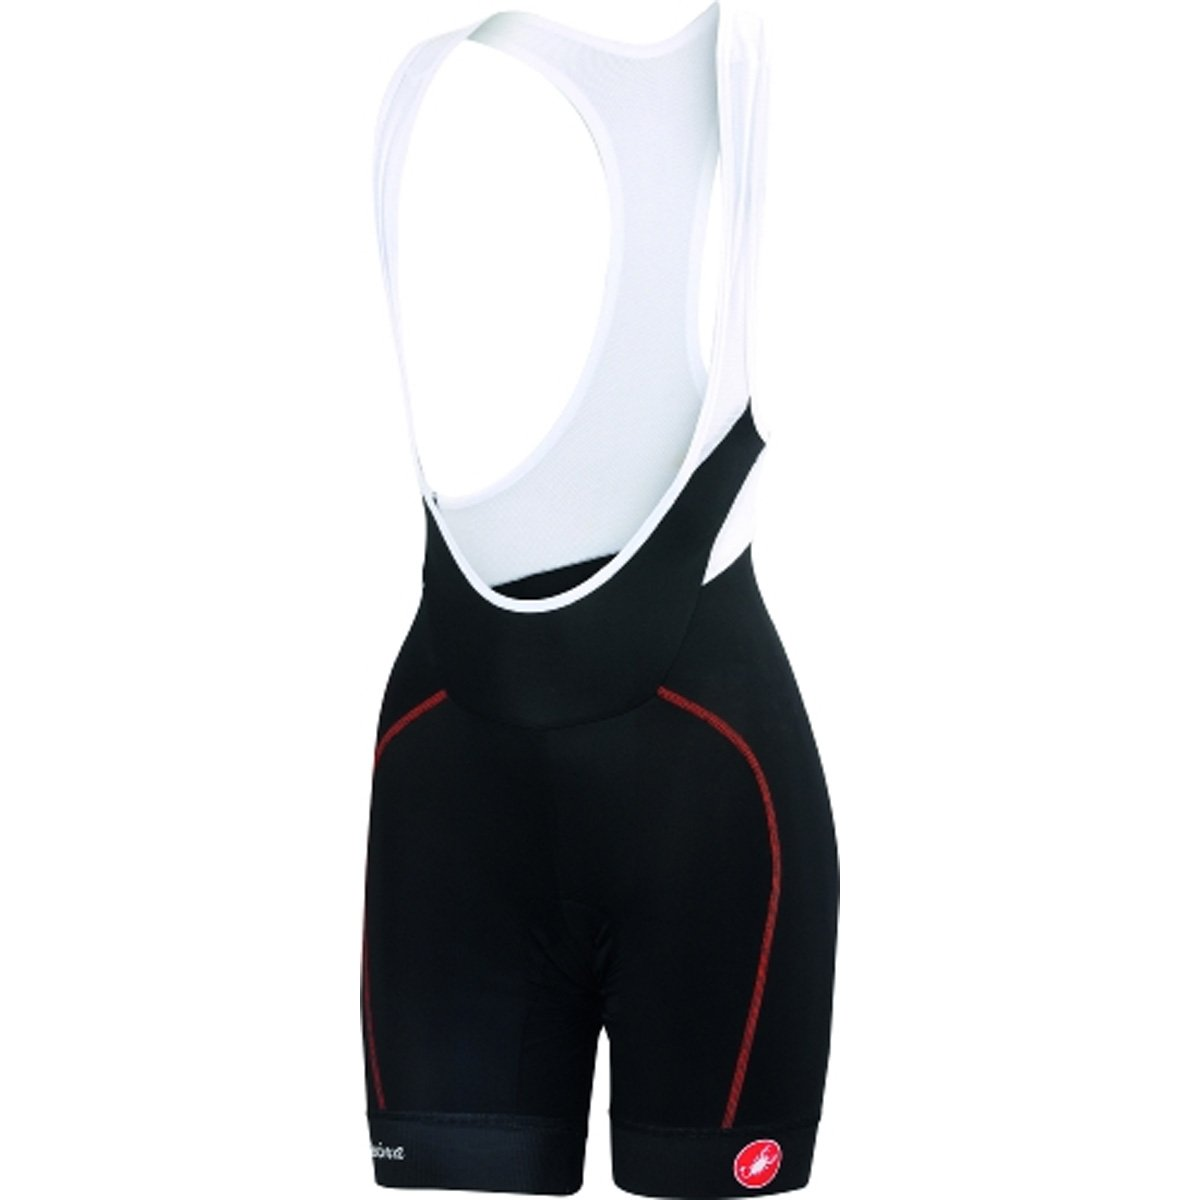 Castelli 2019 Women's Velocissima Bib Cycling Short - L15046 (Black/red - S) by Castelli (Image #1)